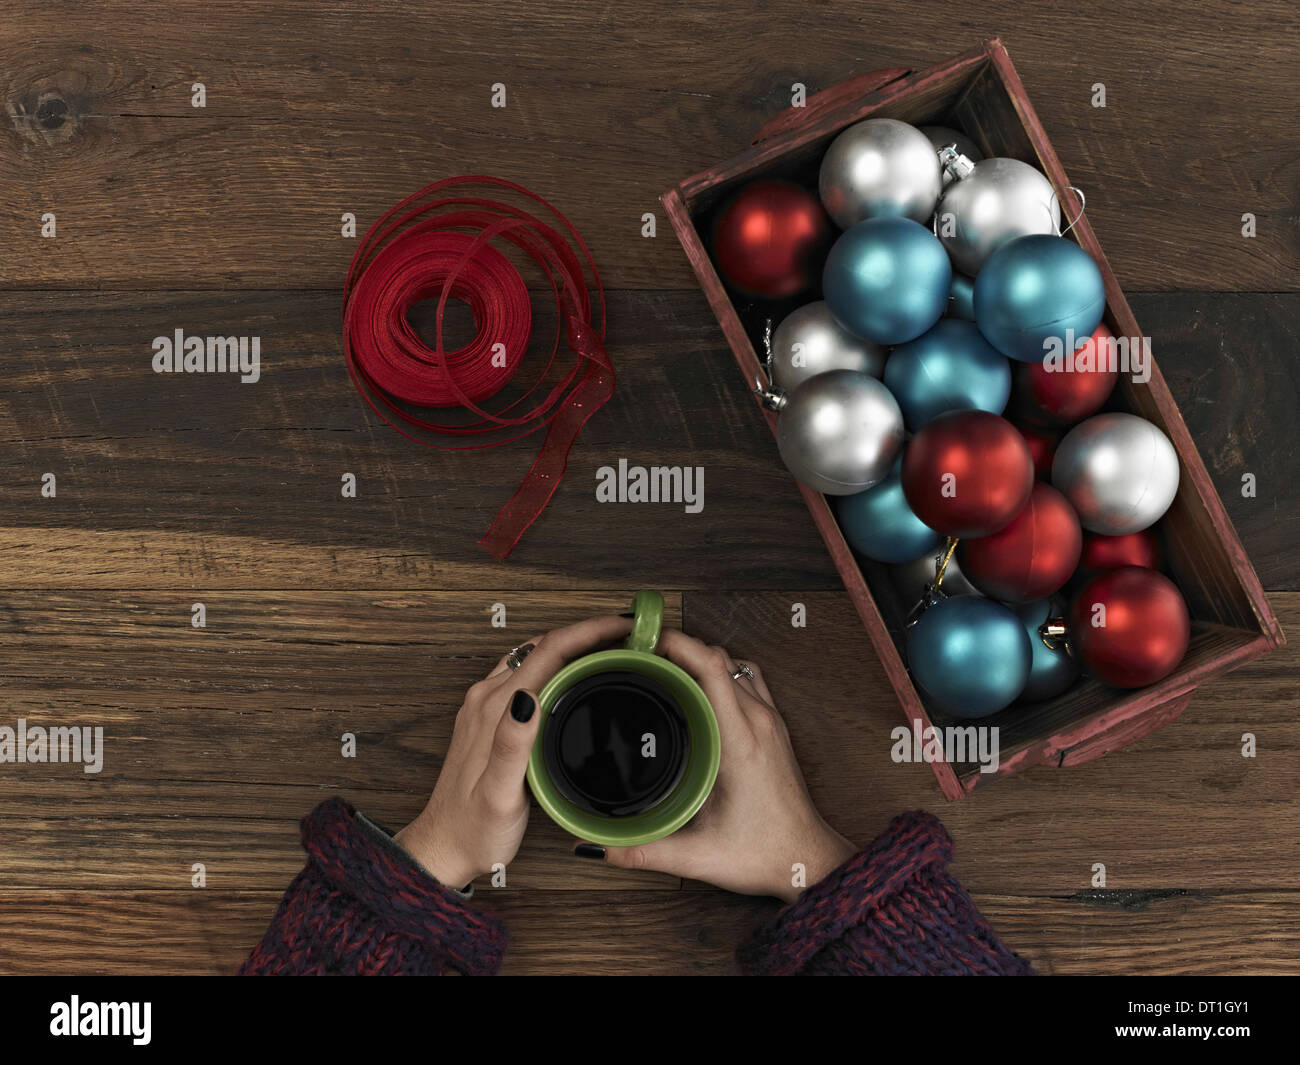 blue red and silver ornaments and red ribbon in a box on a wooden board A hand curled around a cup of coffee Taking a break - Stock Image